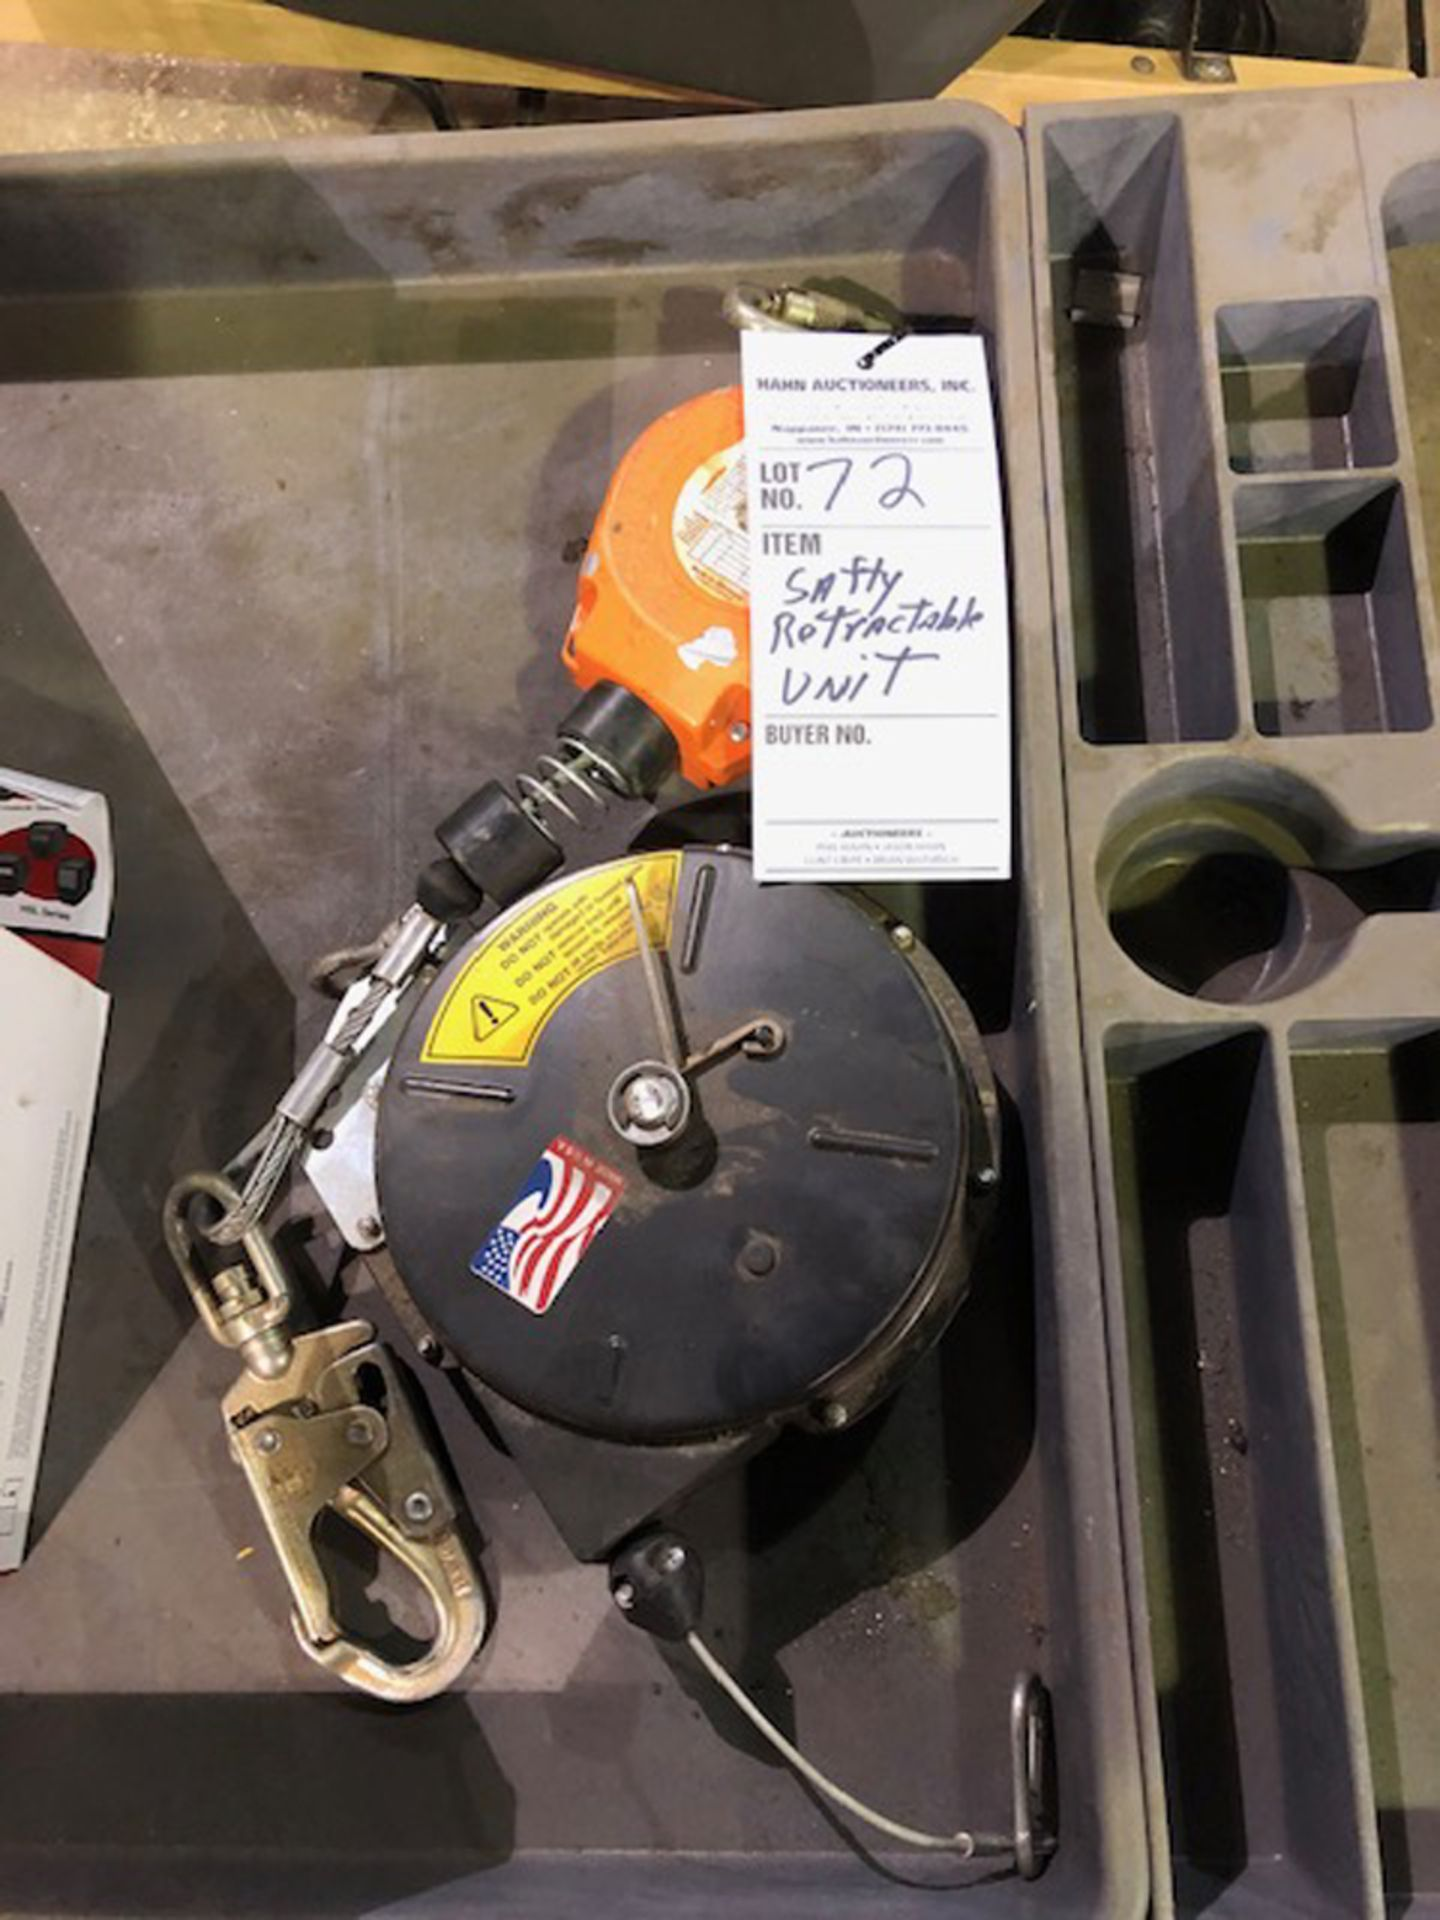 Lot 72 - safety retractable units